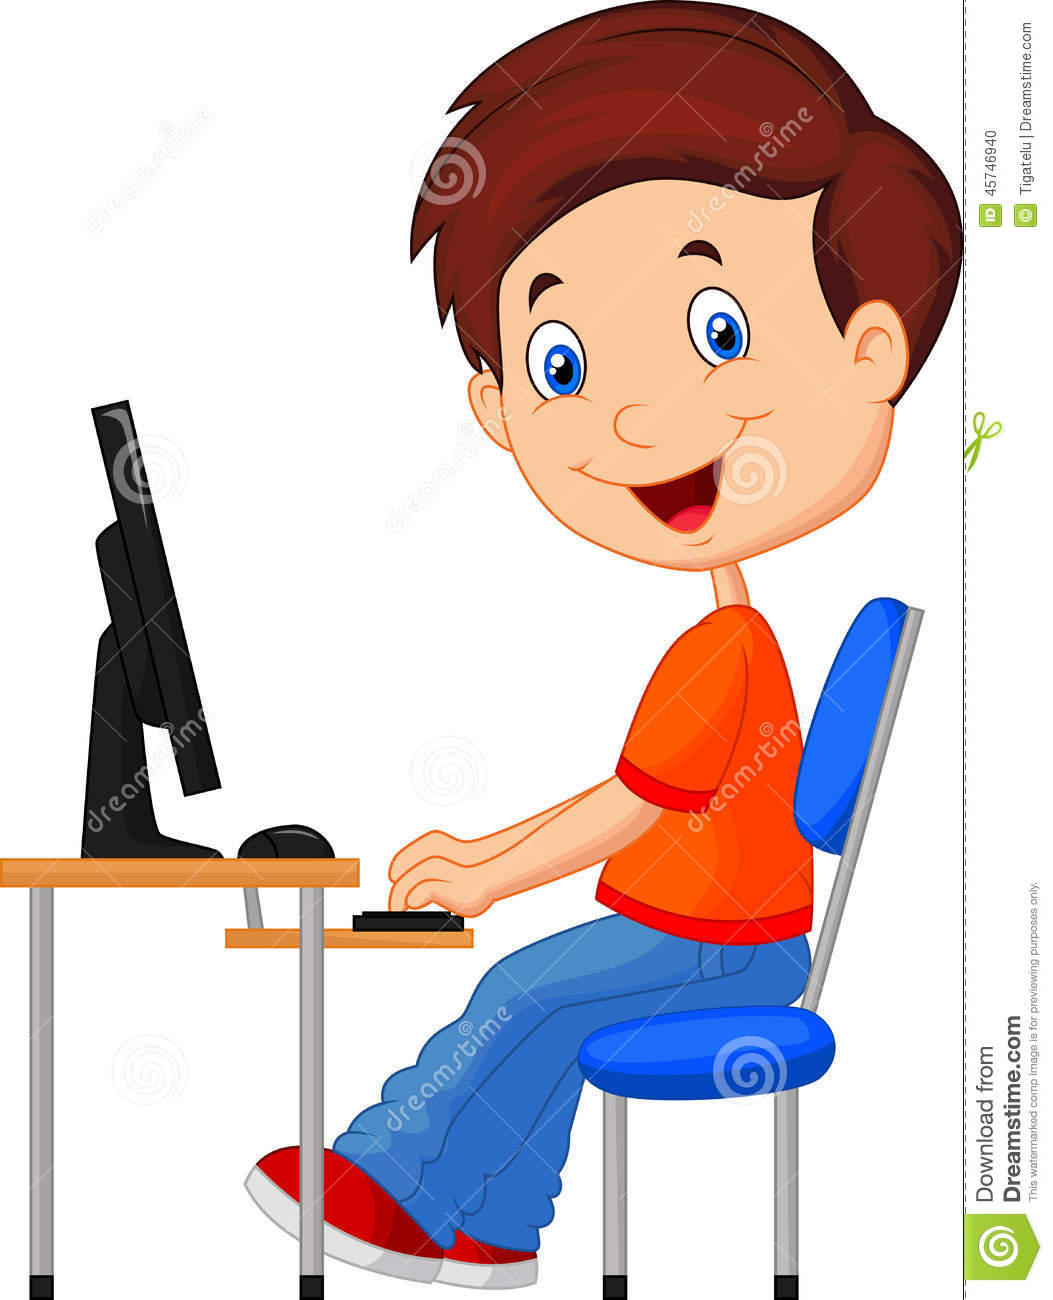 cartoon kid with personal computer stock vector image little boy clipart jpeg free little boy clipart in a house scared